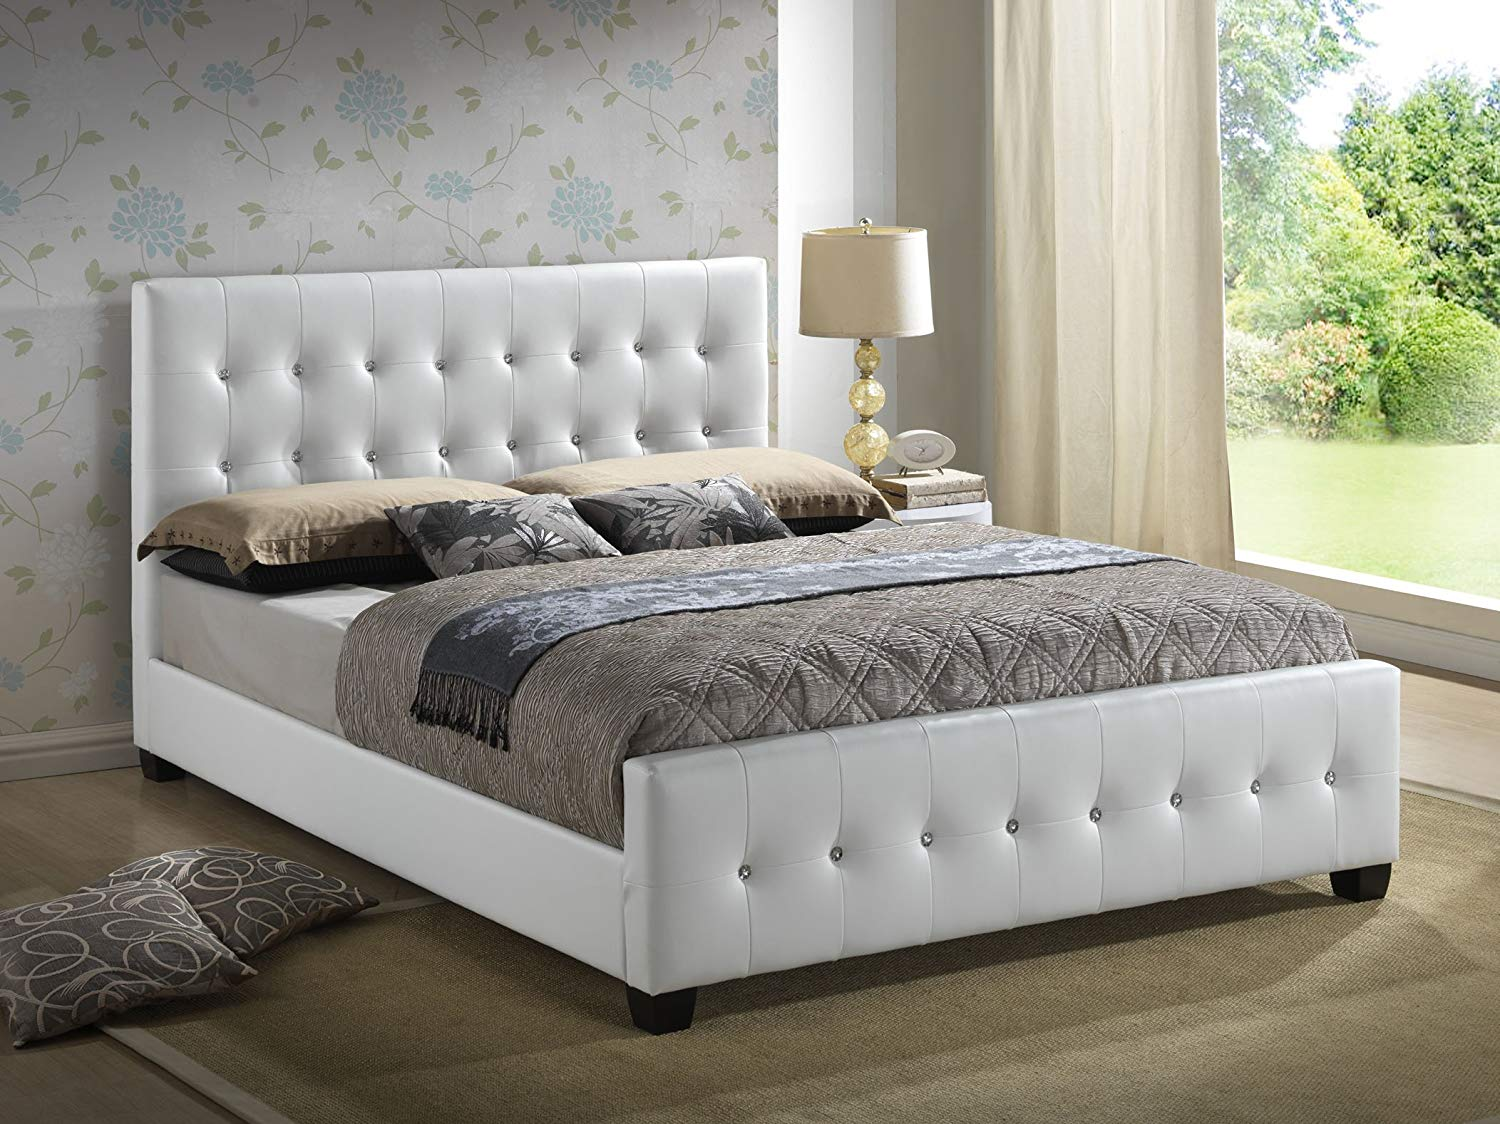 queen size beds amazon.com: white - queen size - modern headboard tufted leather look PXROMOT